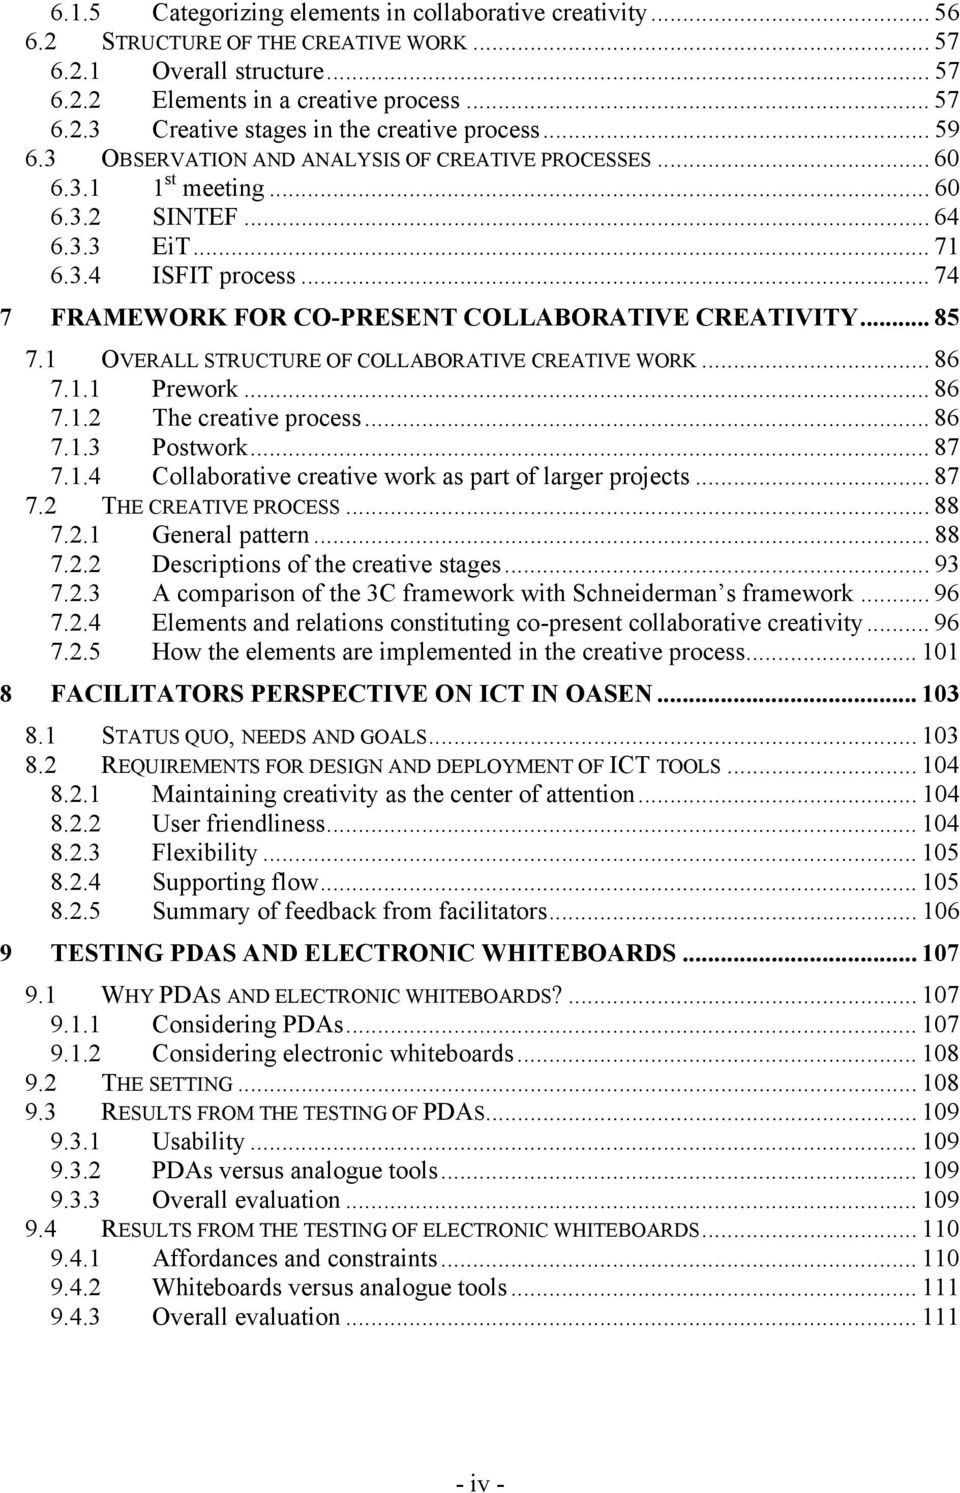 .. 85 7.1 OVERALL STRUCTURE OF COLLABORATIVE CREATIVE WORK... 86 7.1.1 Prework... 86 7.1.2 The creative process... 86 7.1.3 Postwork... 87 7.1.4 Collaborative creative work as part of larger projects.